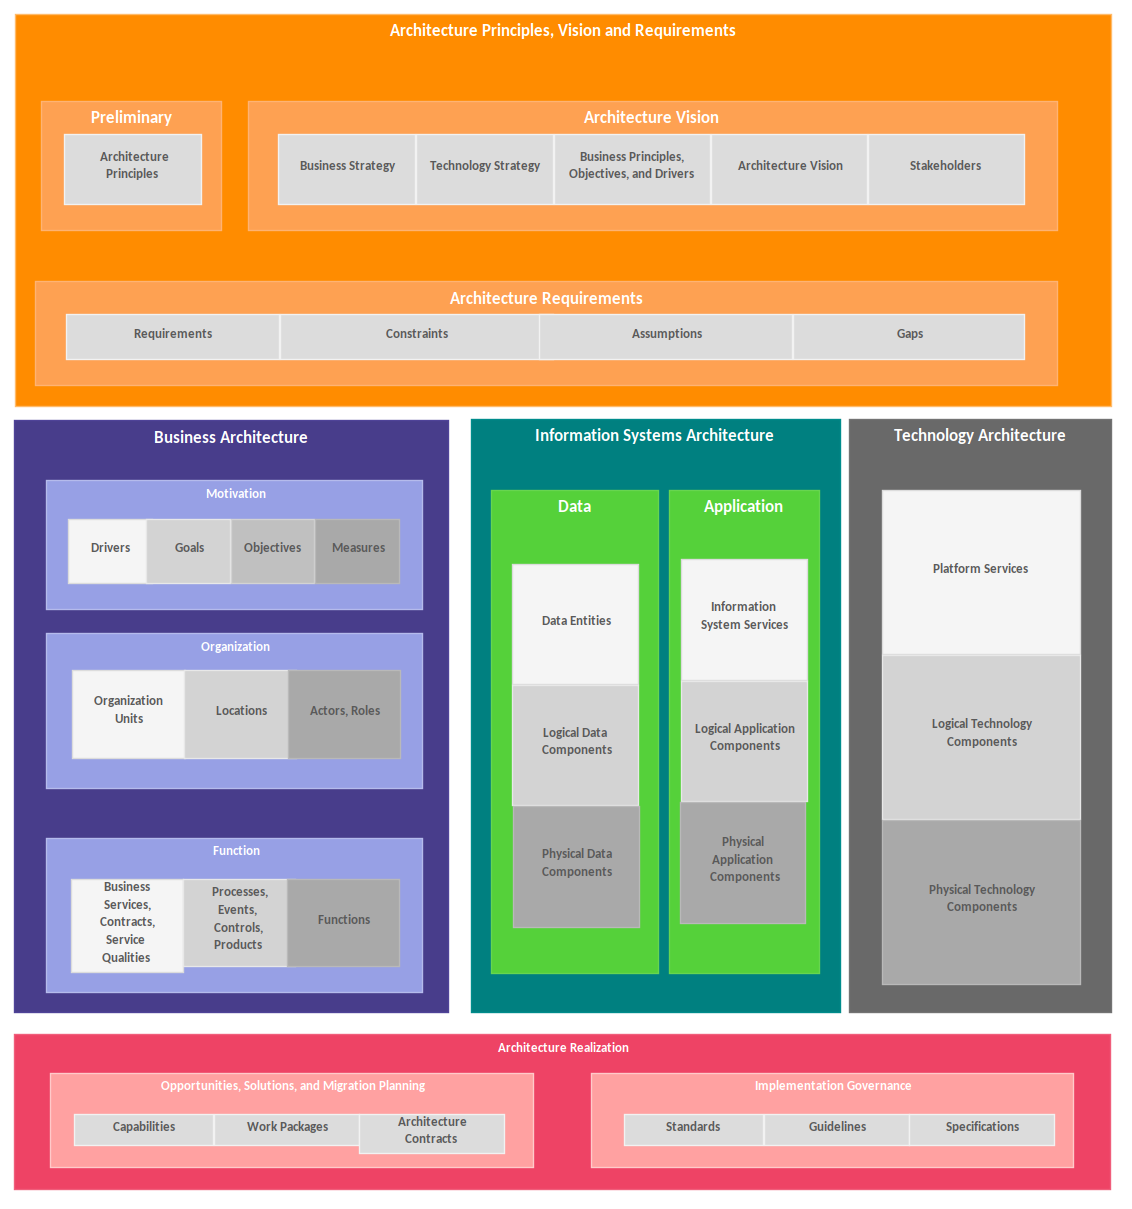 Custom Diagrams Example - Operating Model Business Architecture